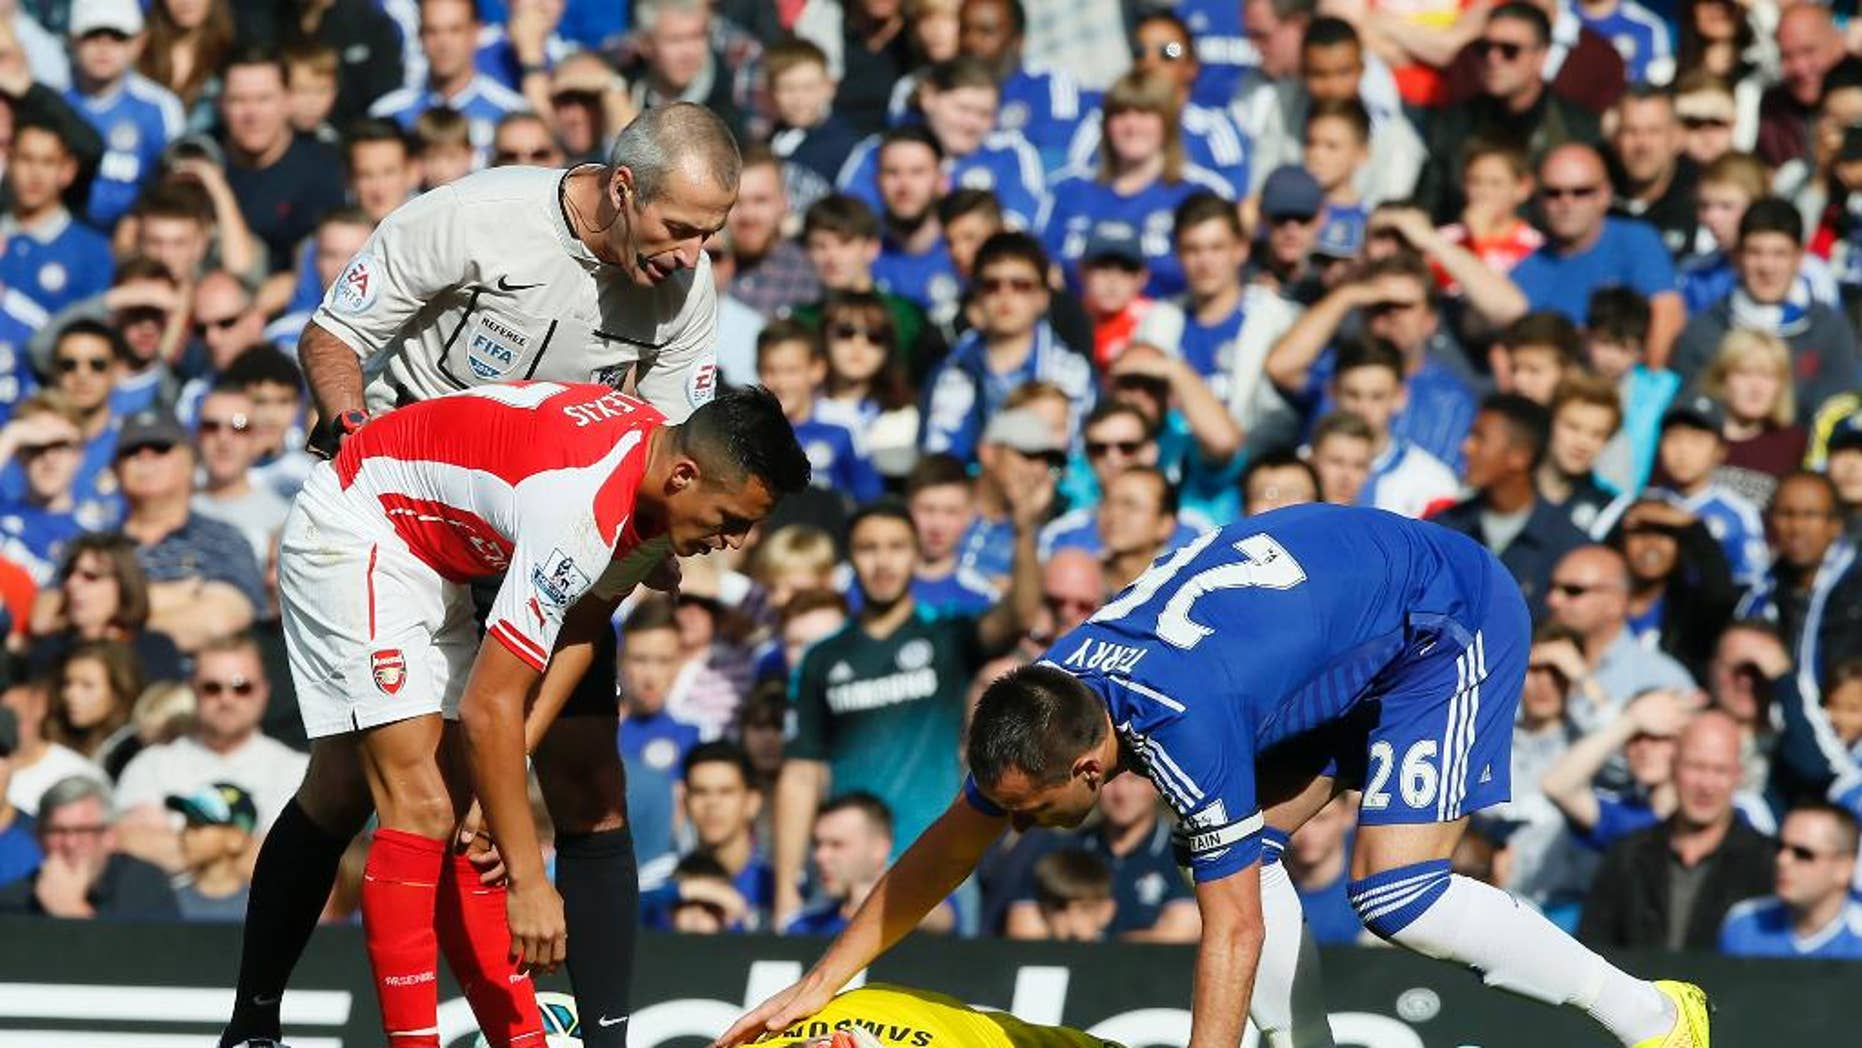 Arsenal's Alexis Sanchez, left, gets up after colliding with Chelsea's goalkeeper Thibaut Courtois, who lies on the ground attended to by teammate Chelsea's John Terry, right, during their English Premier League soccer match between Chelsea and Arsenal at Stamford Bridge stadium in London Sunday, Oct. 5, 2014. (AP Photo/Alastair Grant)